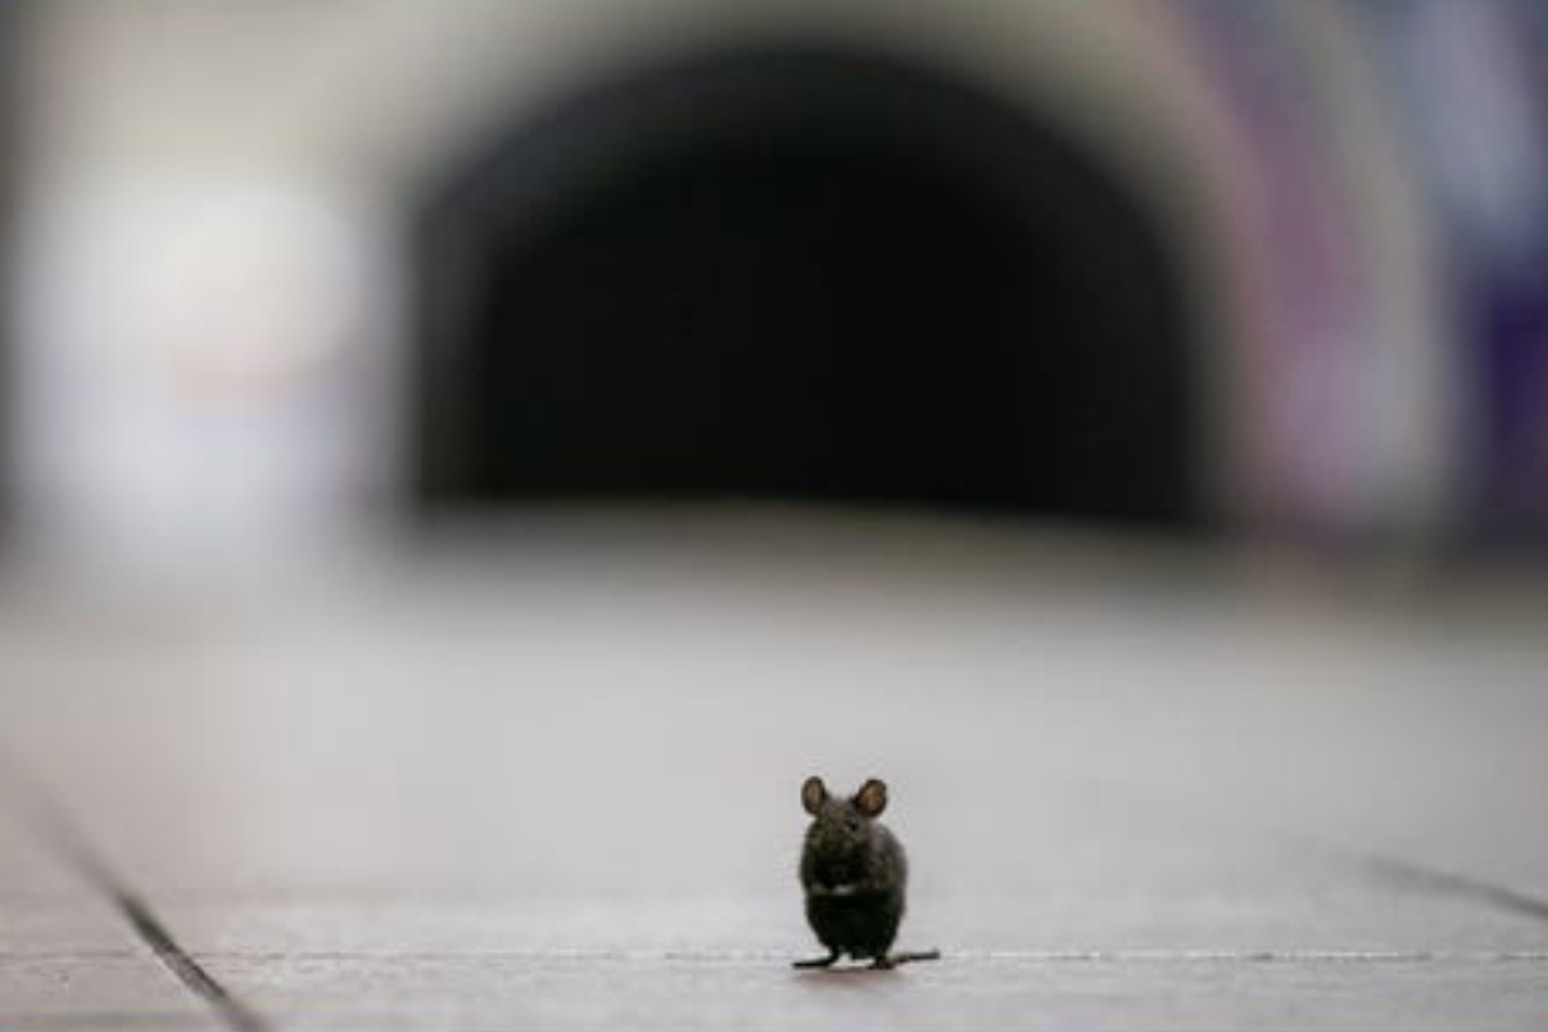 Online traffic for advice with rodent problems jumps 37%